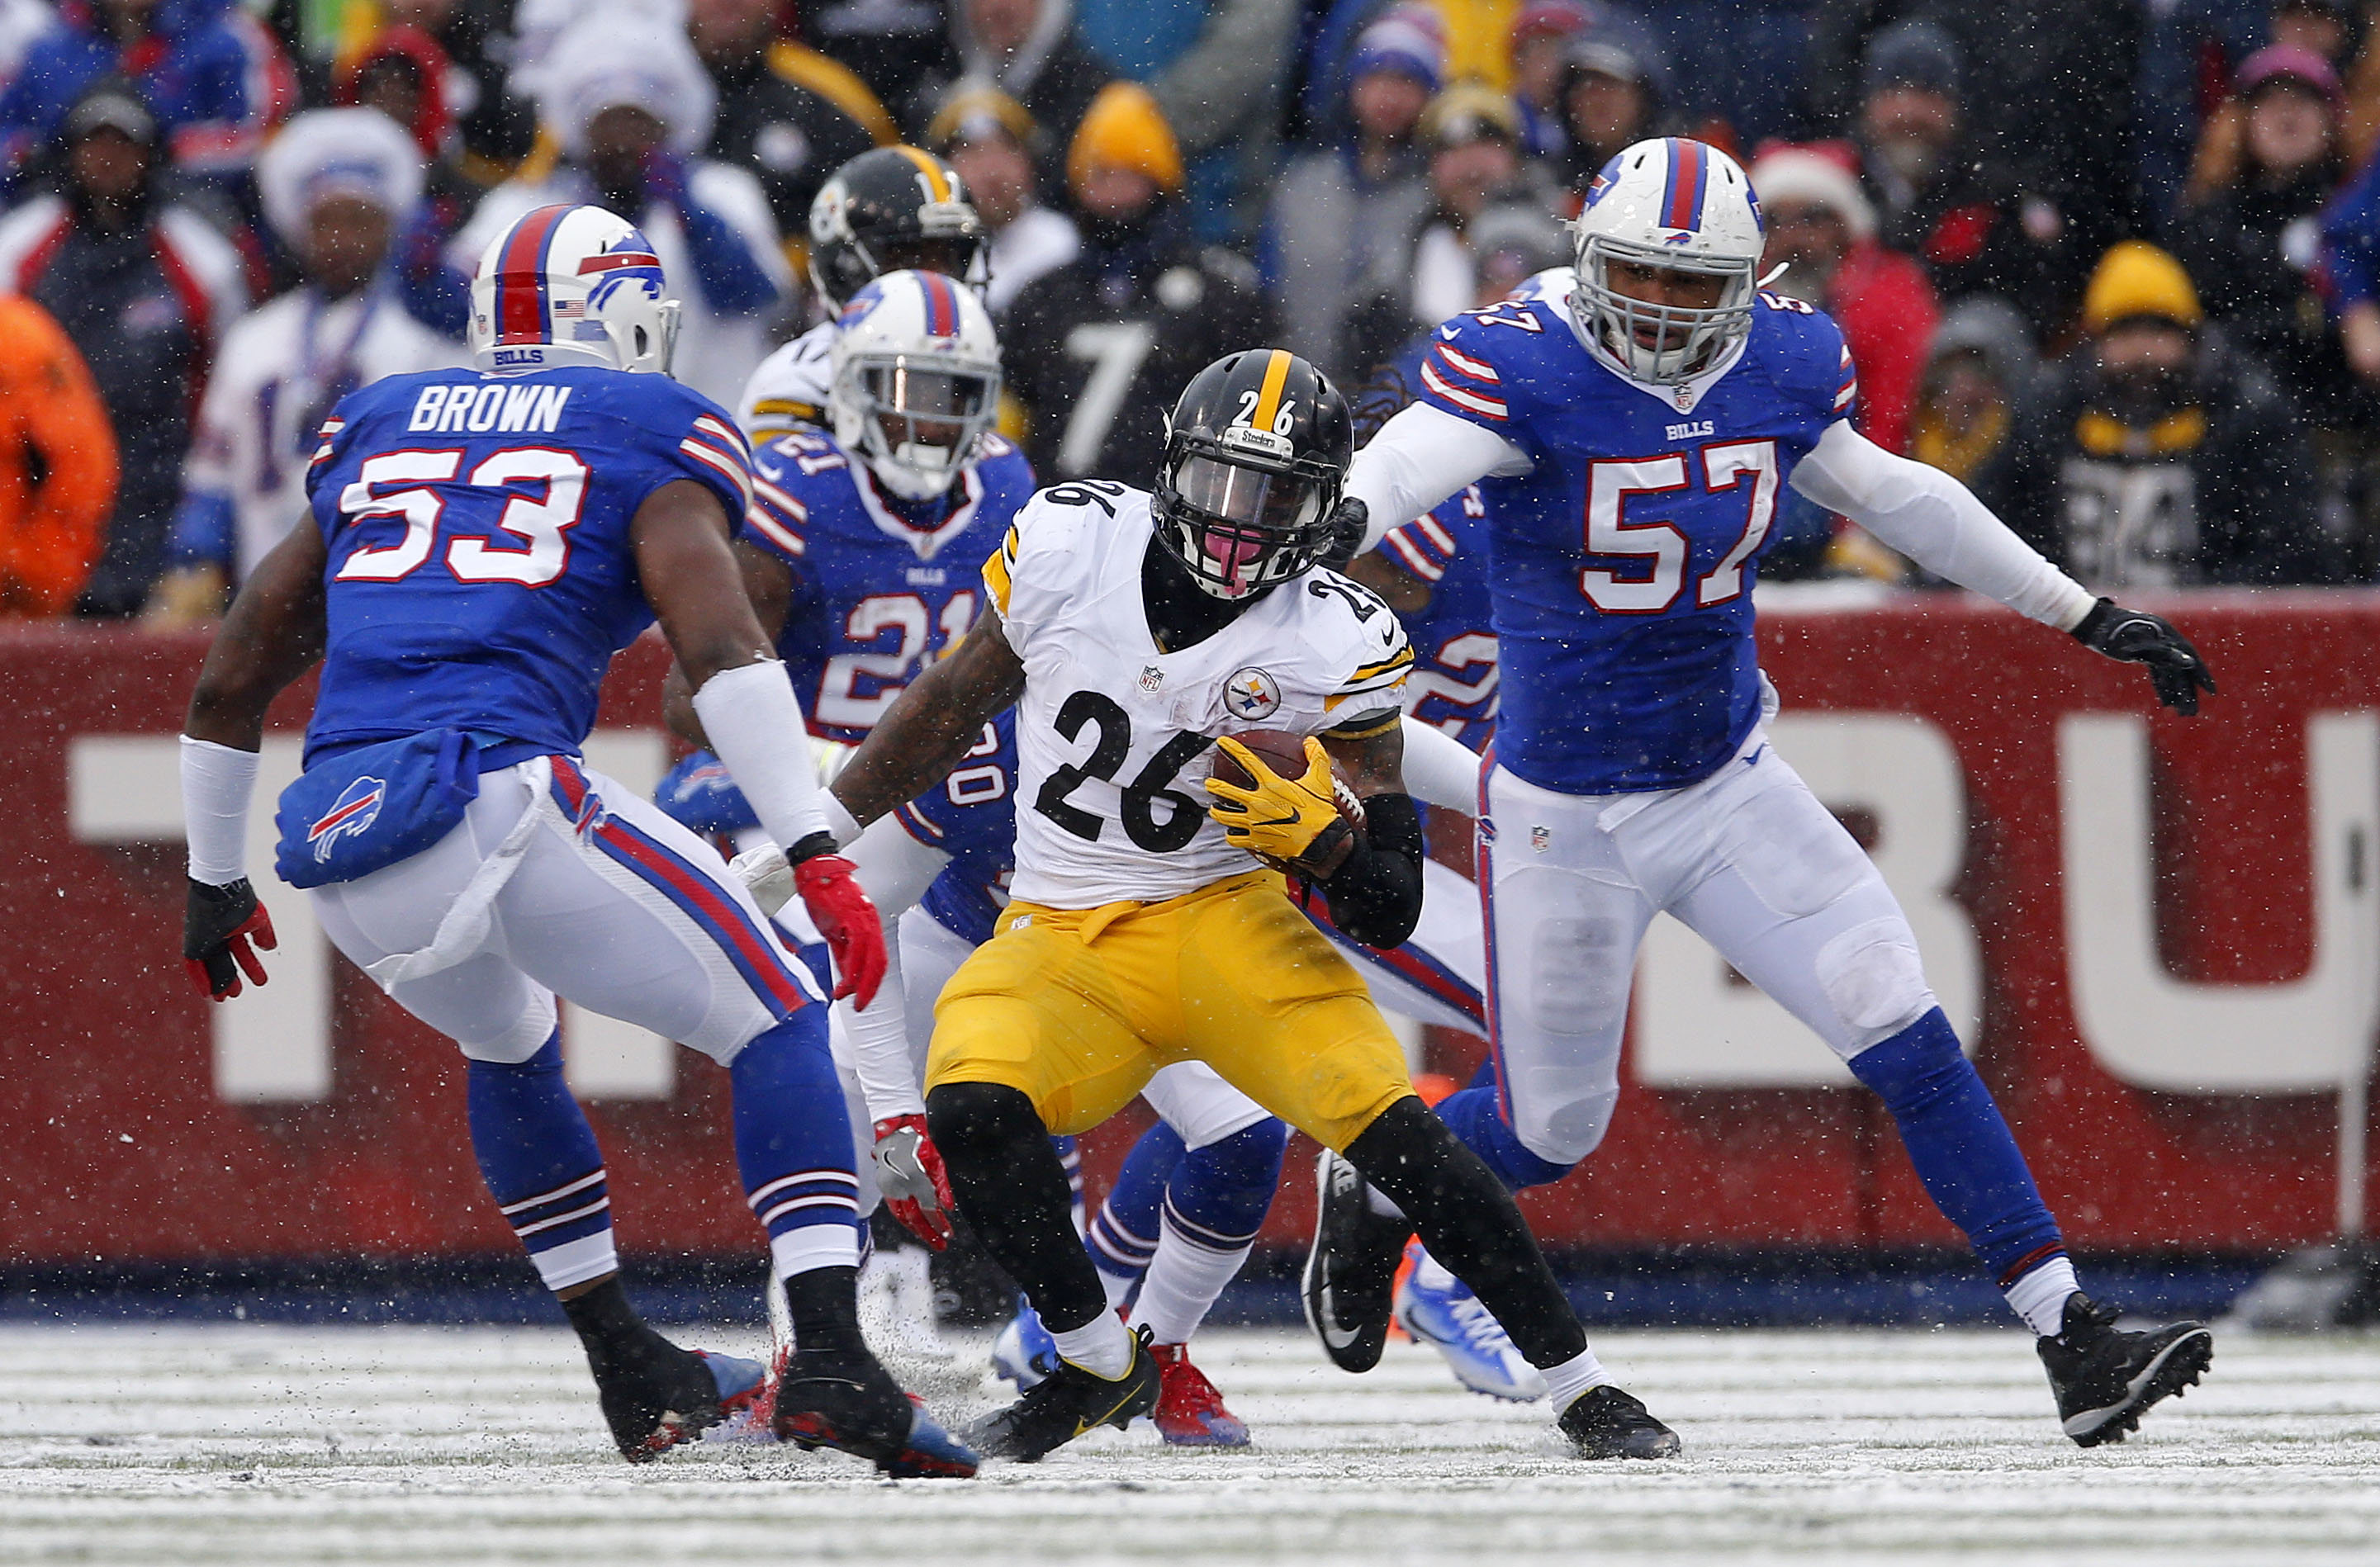 The Steelers' Le'Veon Bell ran over, around and through the Buffalo Bills on Sunday. (Mark Mulville/The Buffalo News)